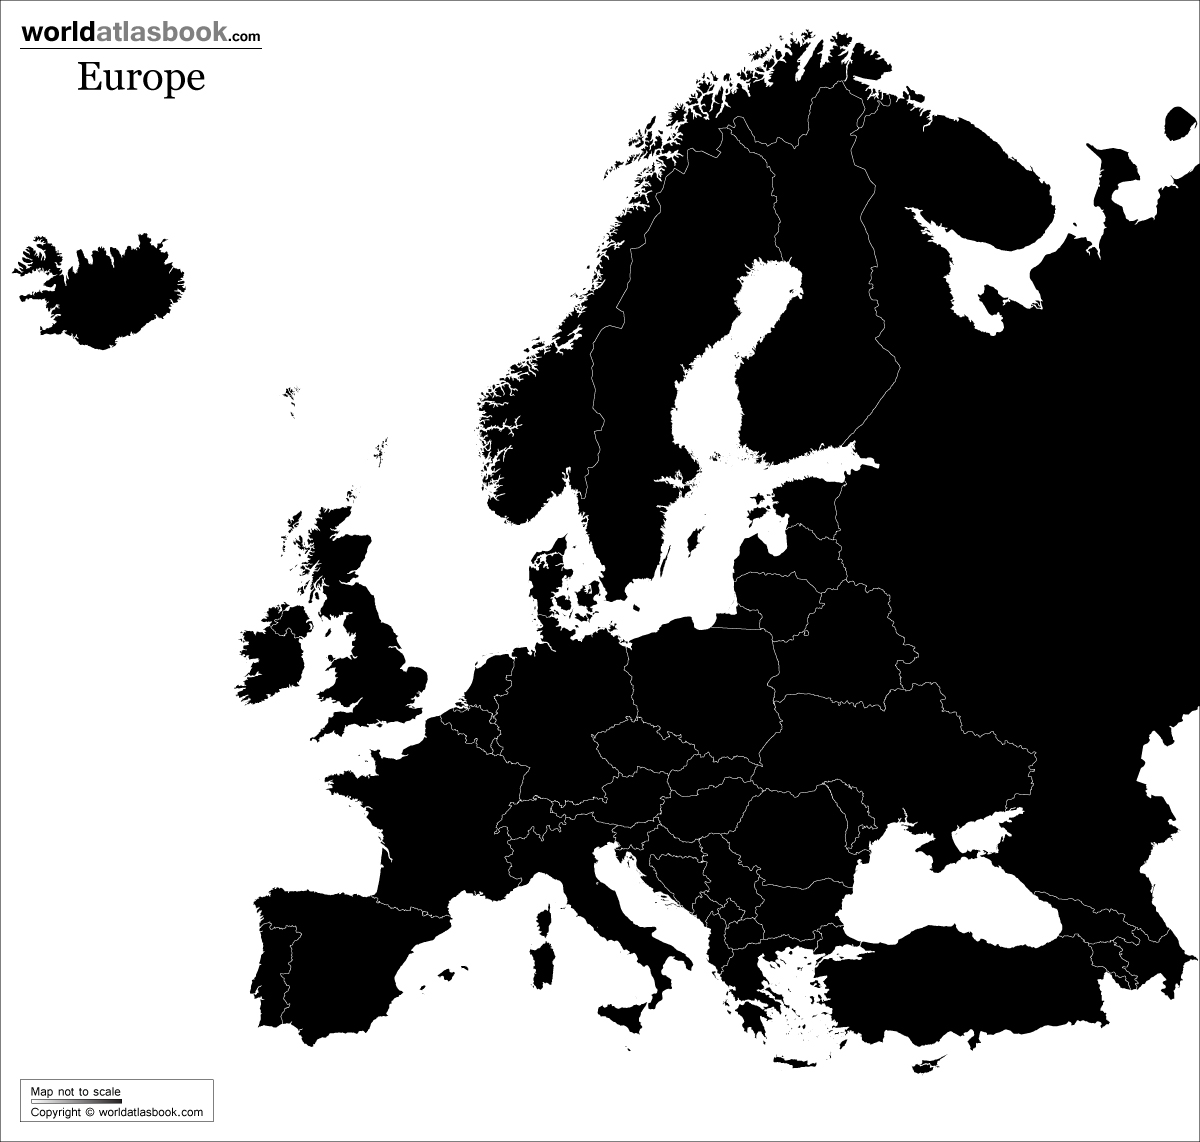 europe-map-black-white-printable | 21ConsultingLLC